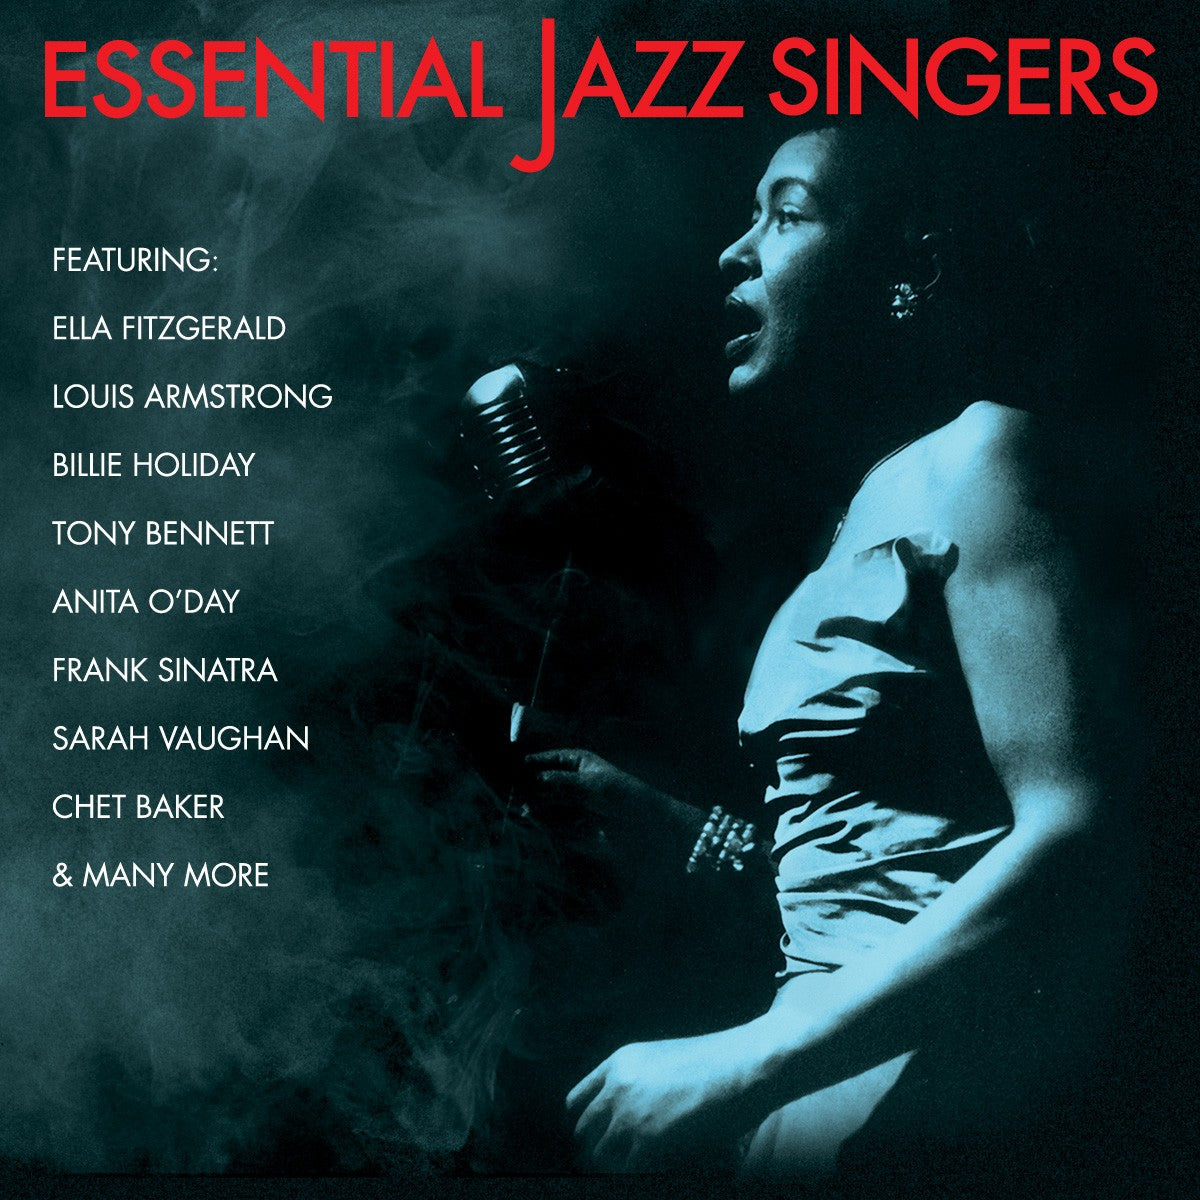 ESSENTIAL JAZZ SINGERS (2 CDS)